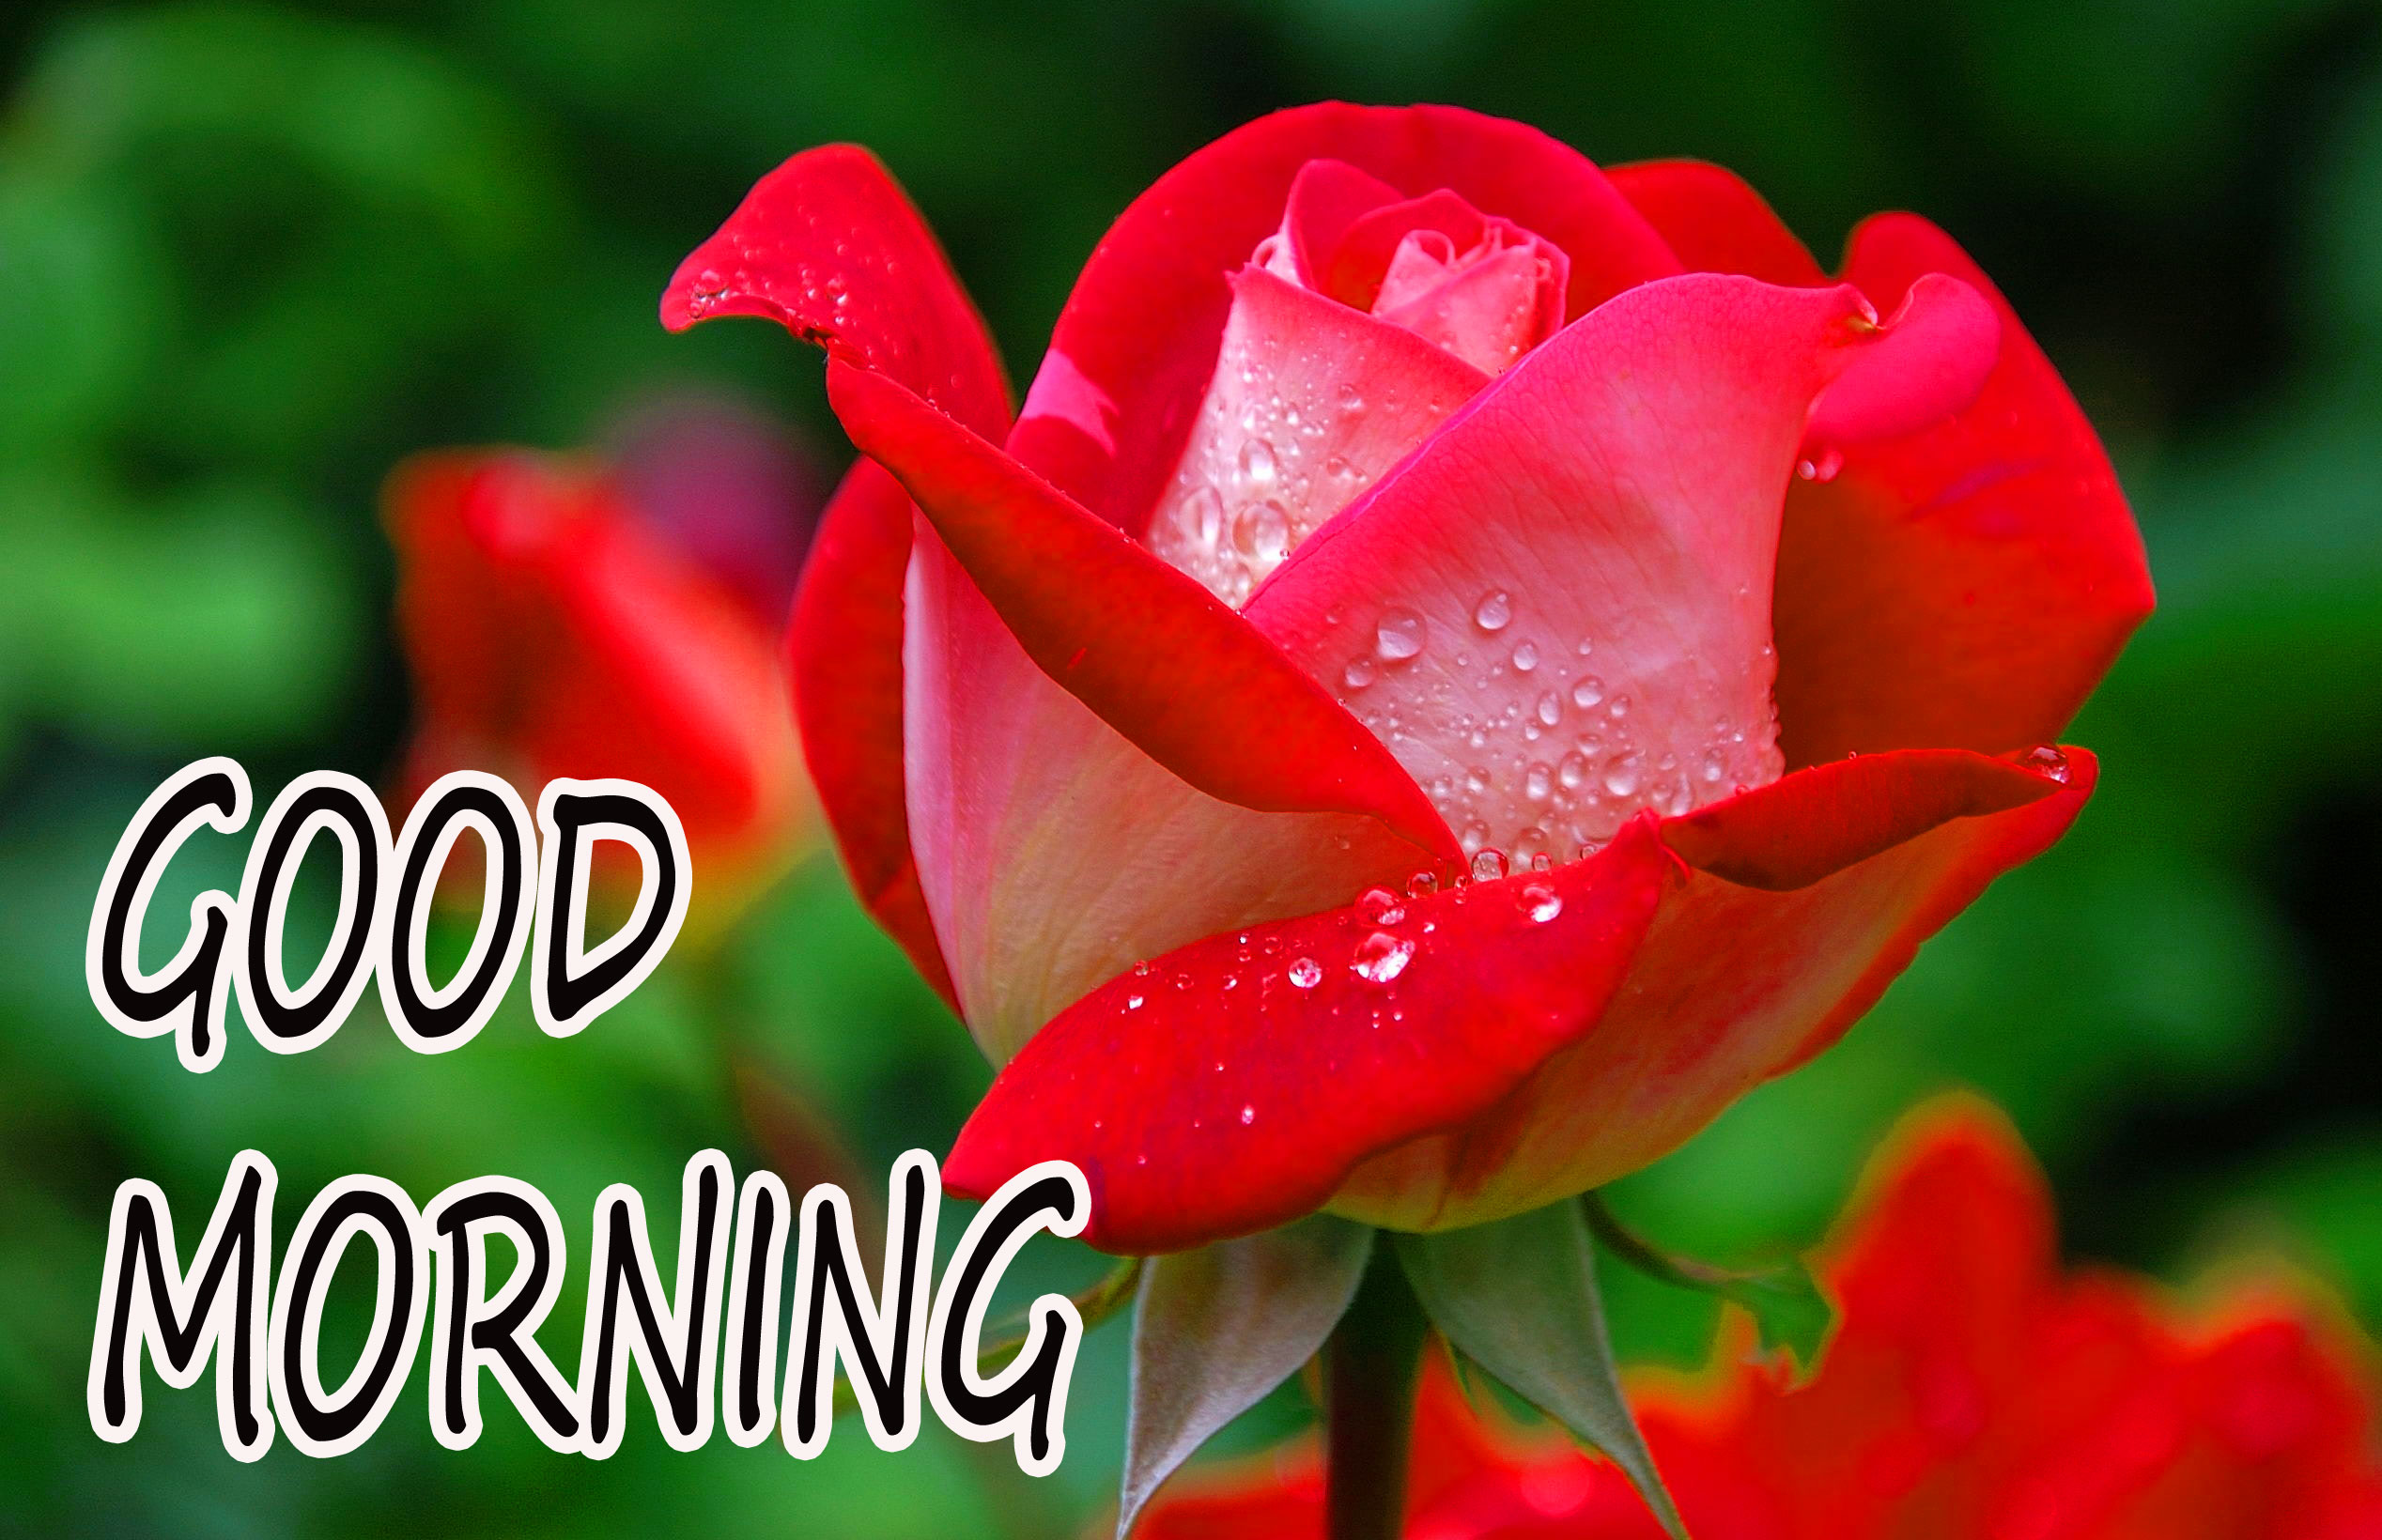 GOOD MORNING IMAGE WITH BEAUTIFUL FLOWERS NATURE WALLPAPER FOR LOVER FREE NEW